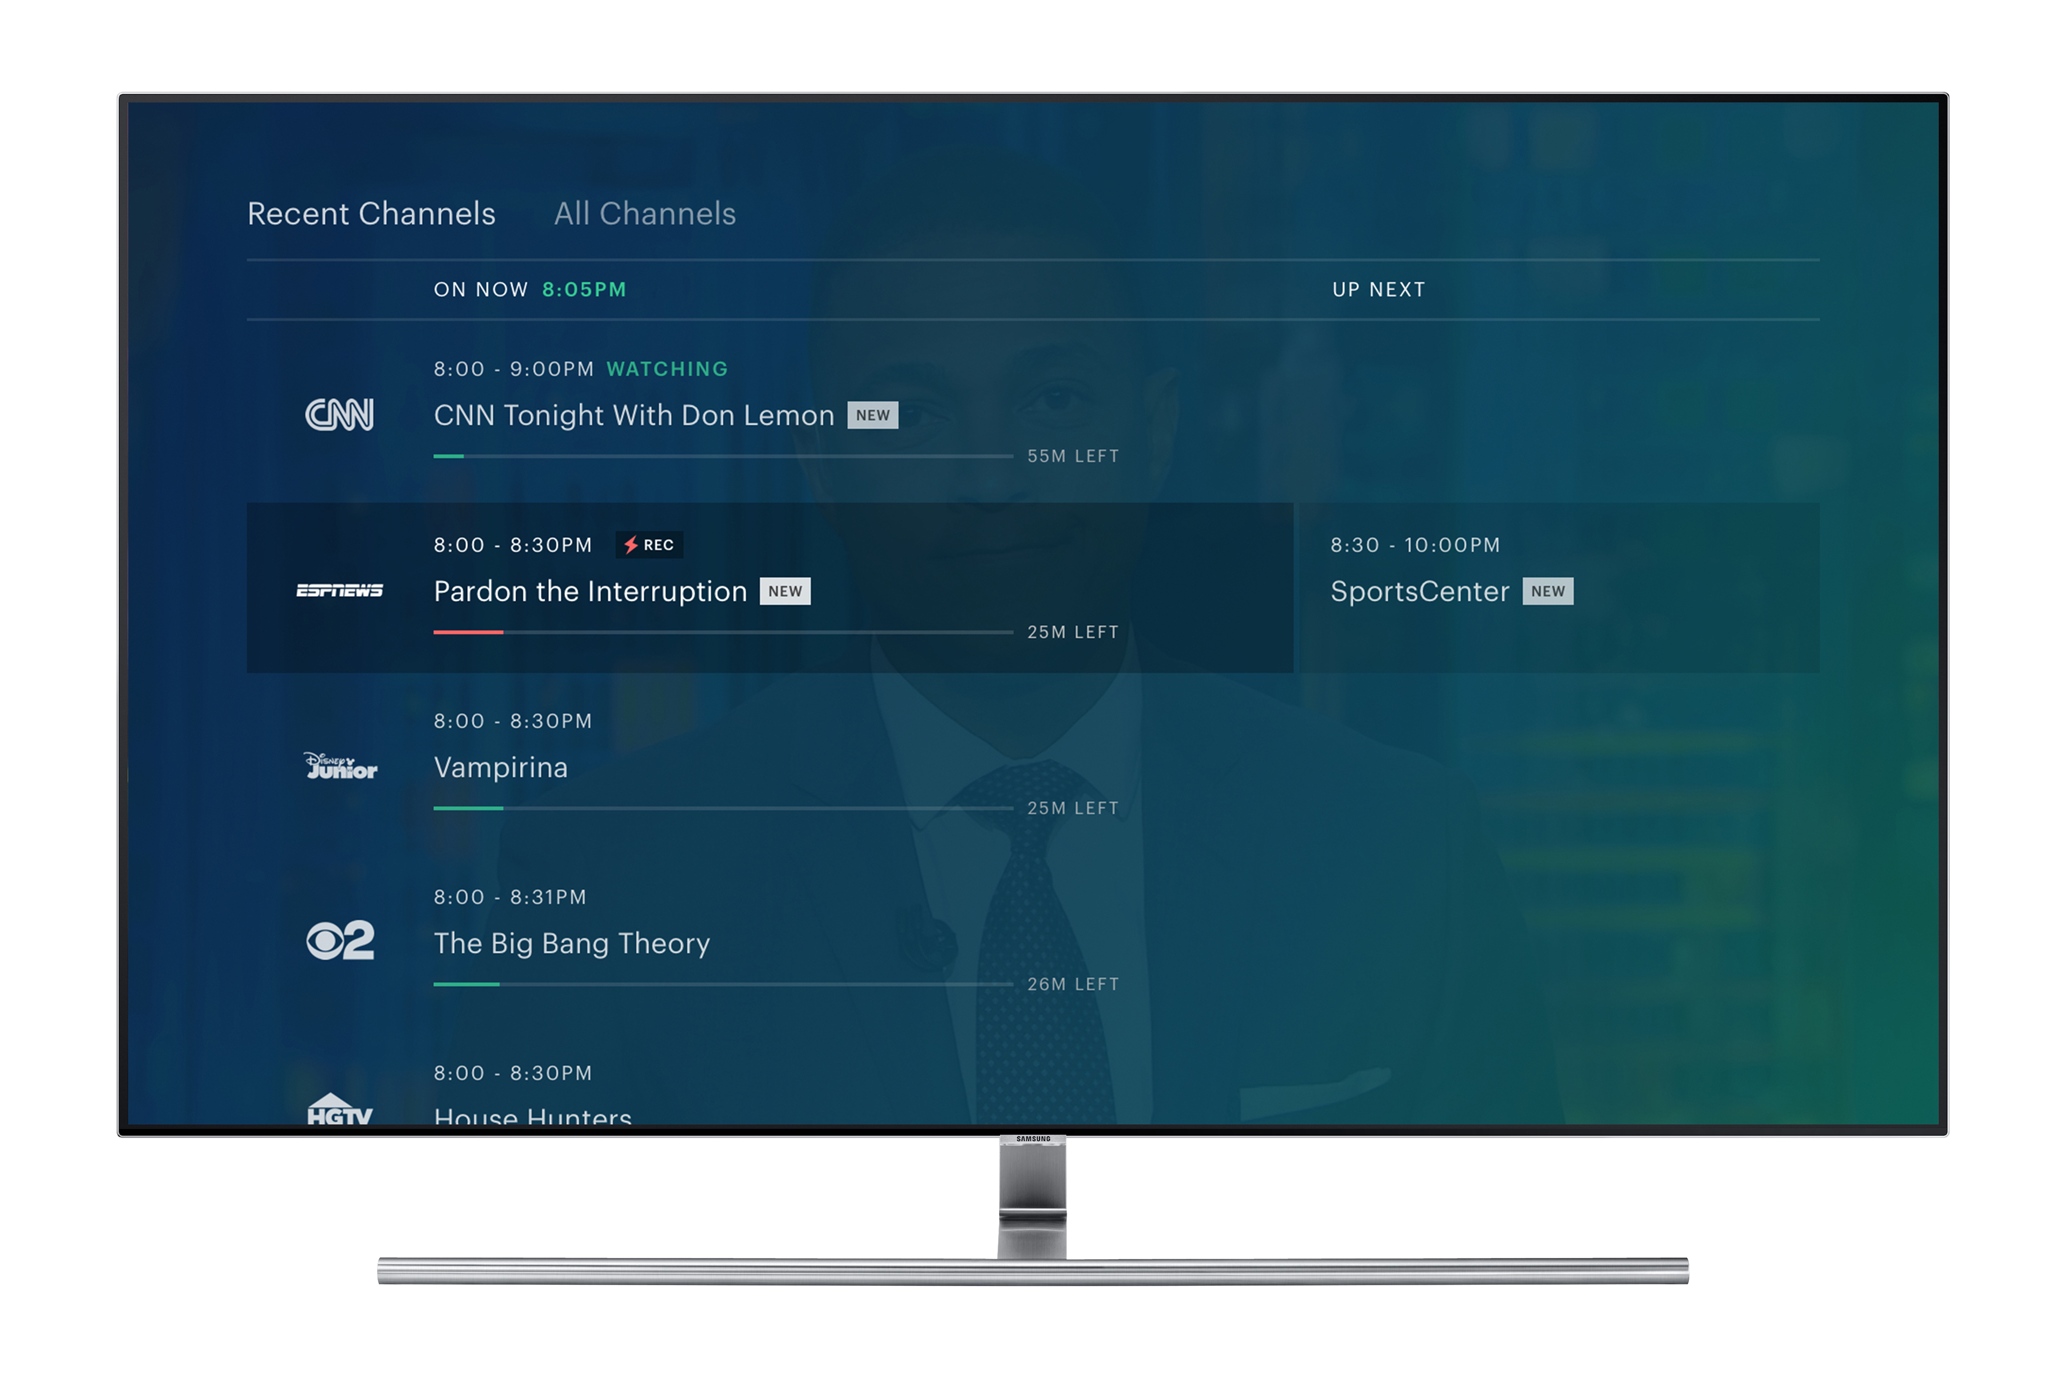 Hulu Live TV Guide Comes To Nintendo Switch